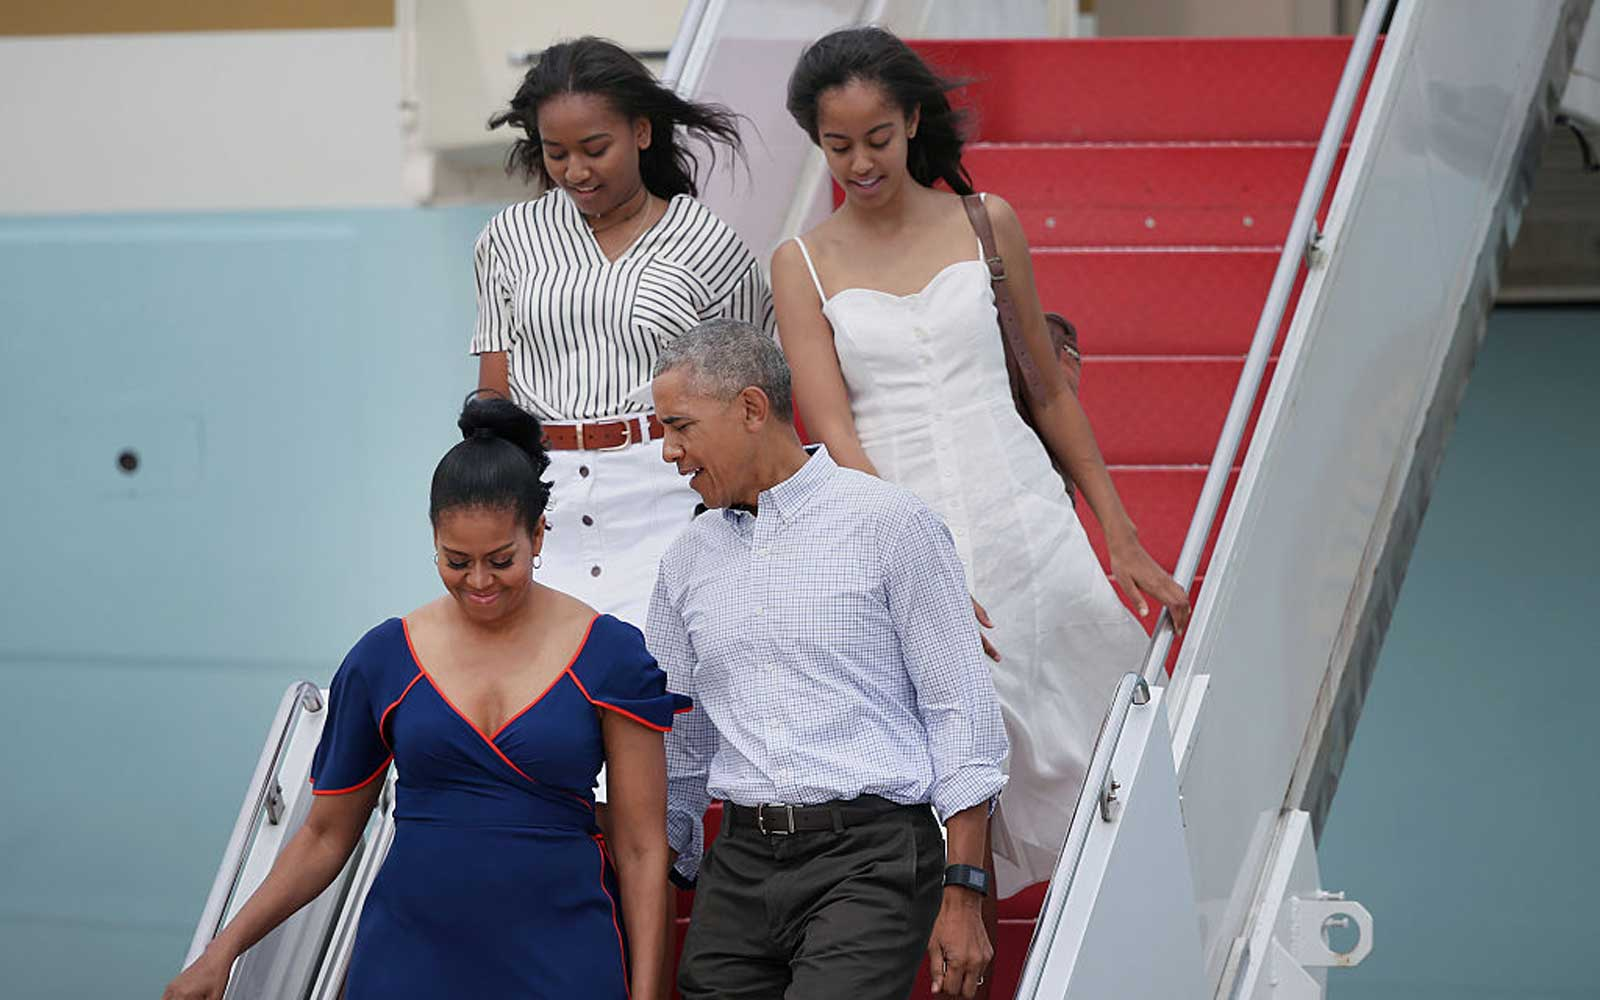 Barack Obama's Net Worth Is $40 Million — Here's How His Family Spends Their Money